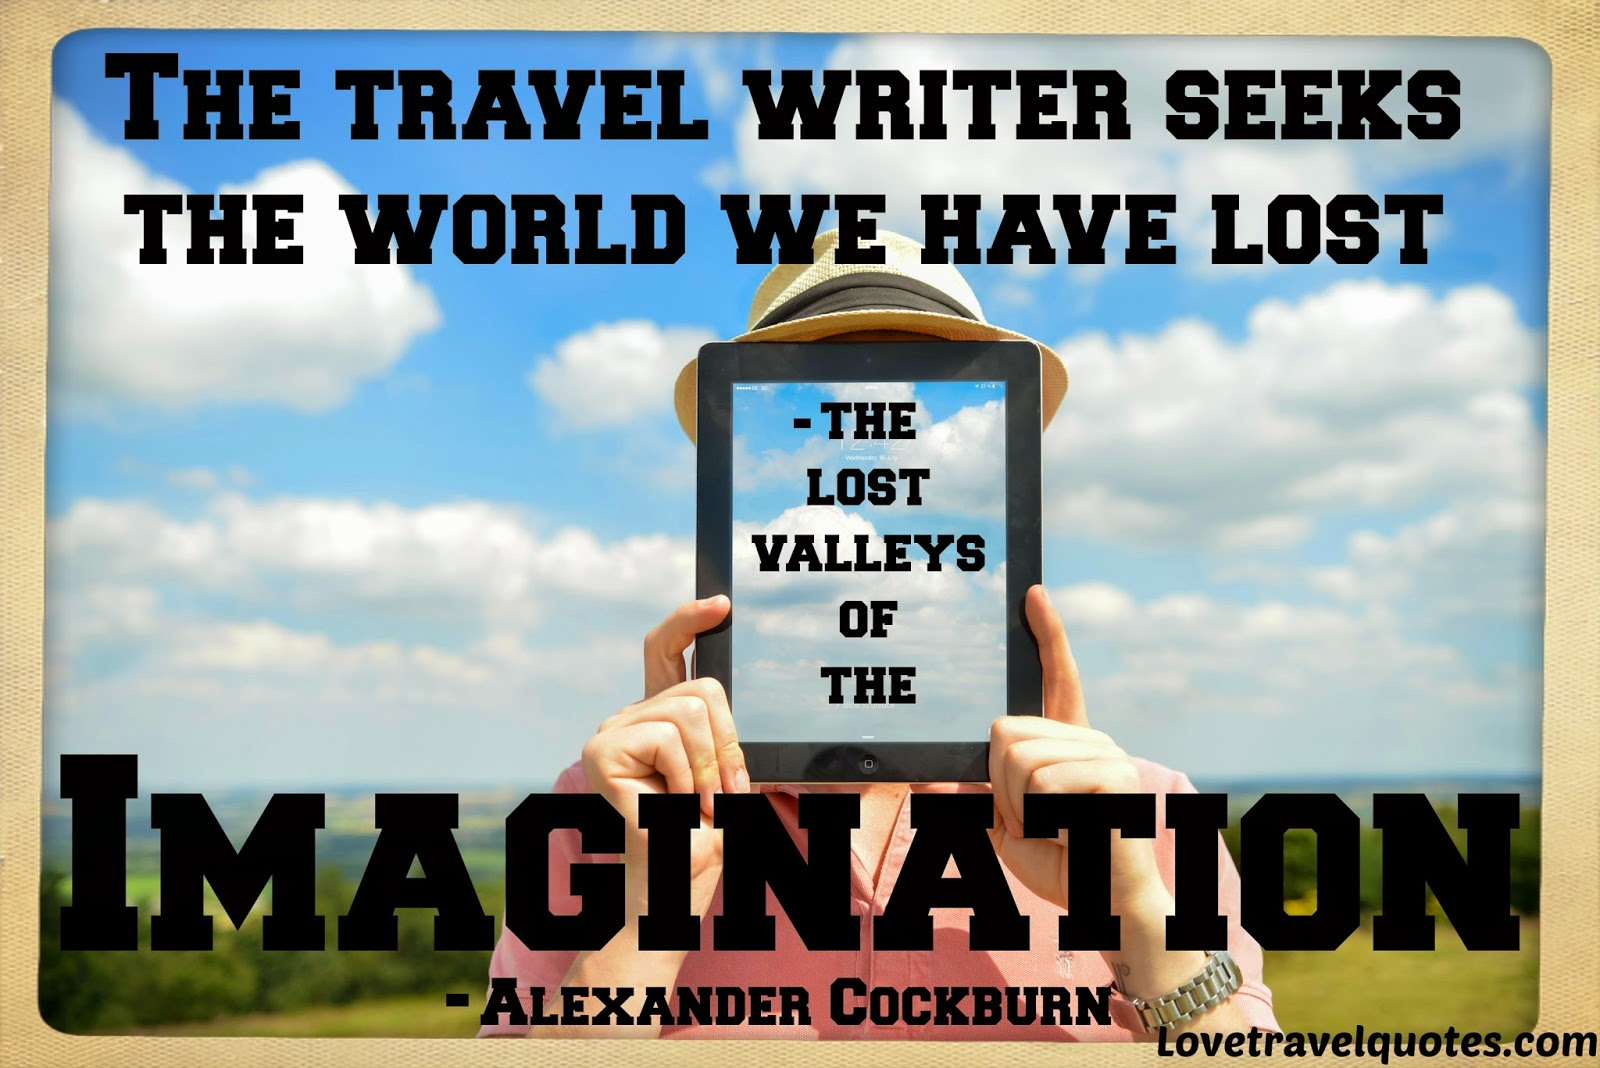 the travel writer seeks the world we have lost - the lost valleys of the imagination